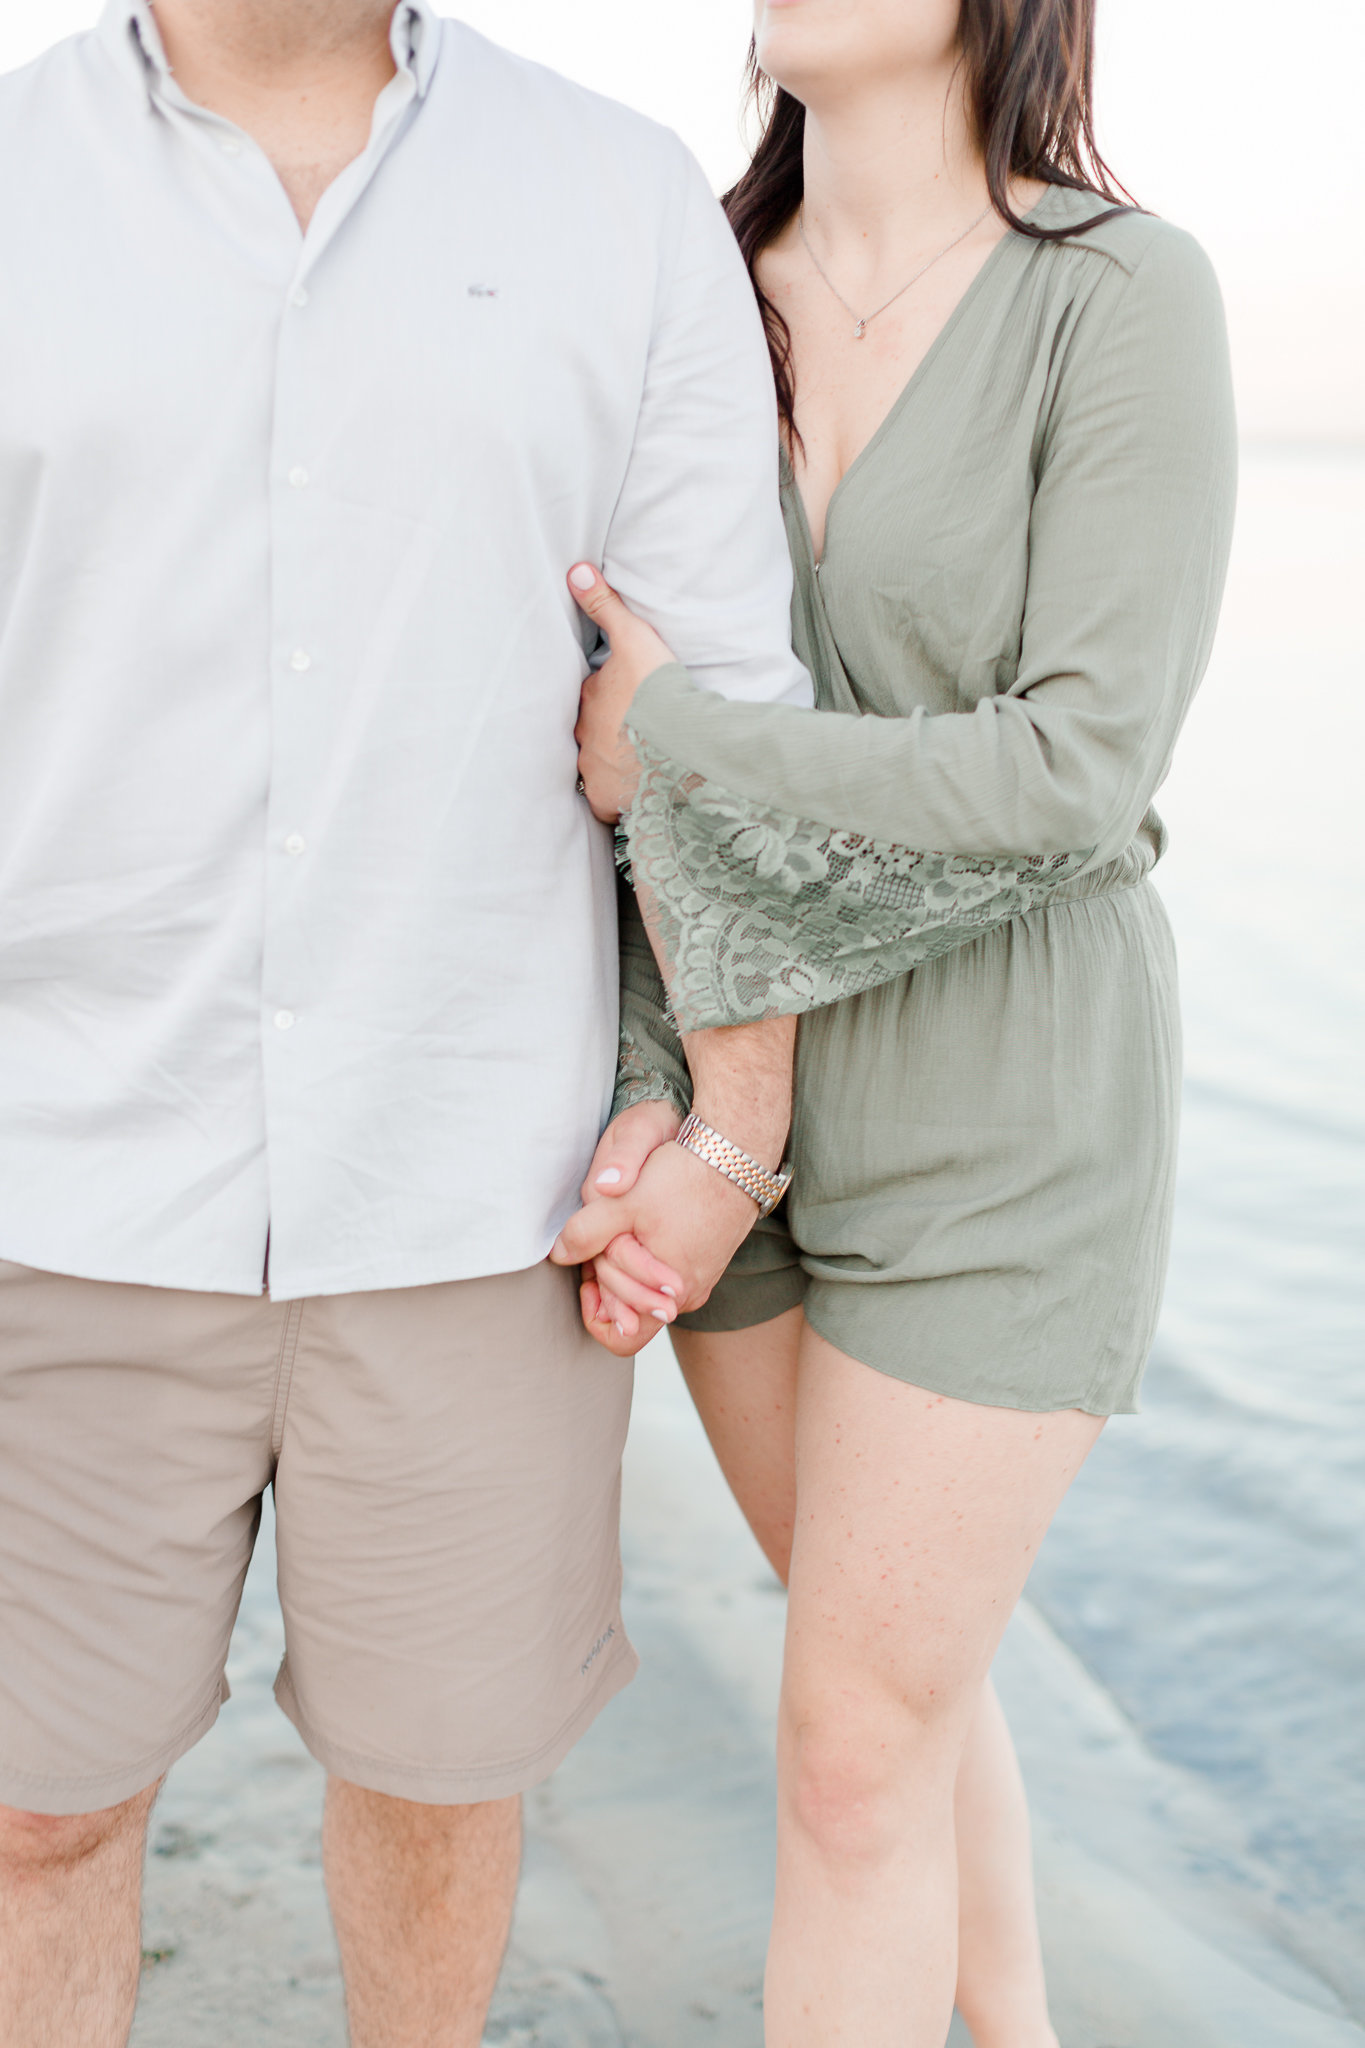 photographe-fiancailles-montreal-parc-national-oka-lisa-renault-photographie-beach-engagement-session-70